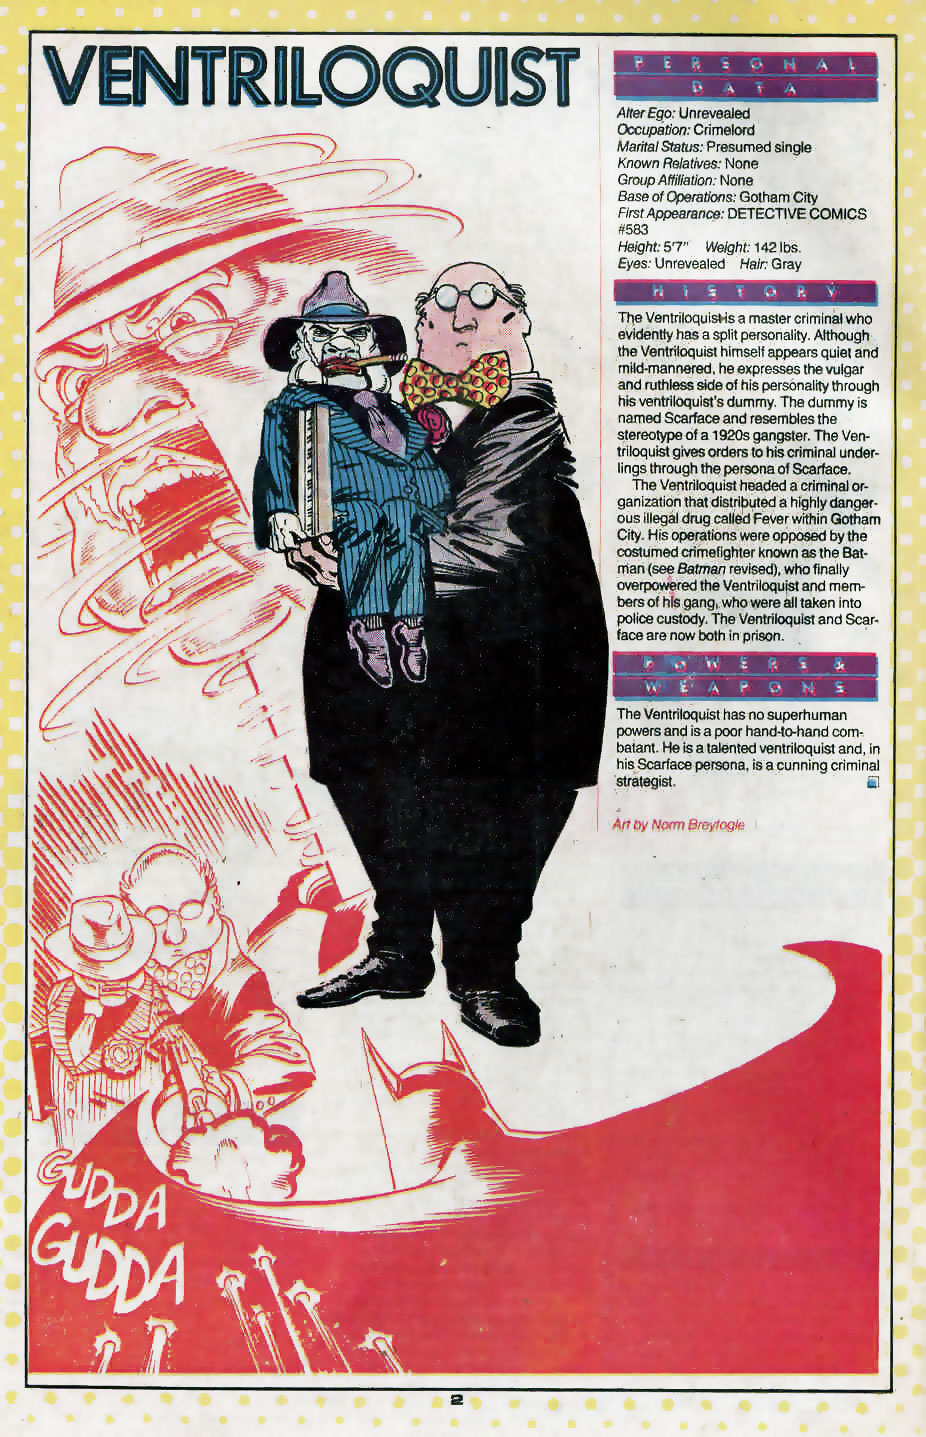 Who's Who Update 88 #4 Ventriloquist by Norm Breyfogle